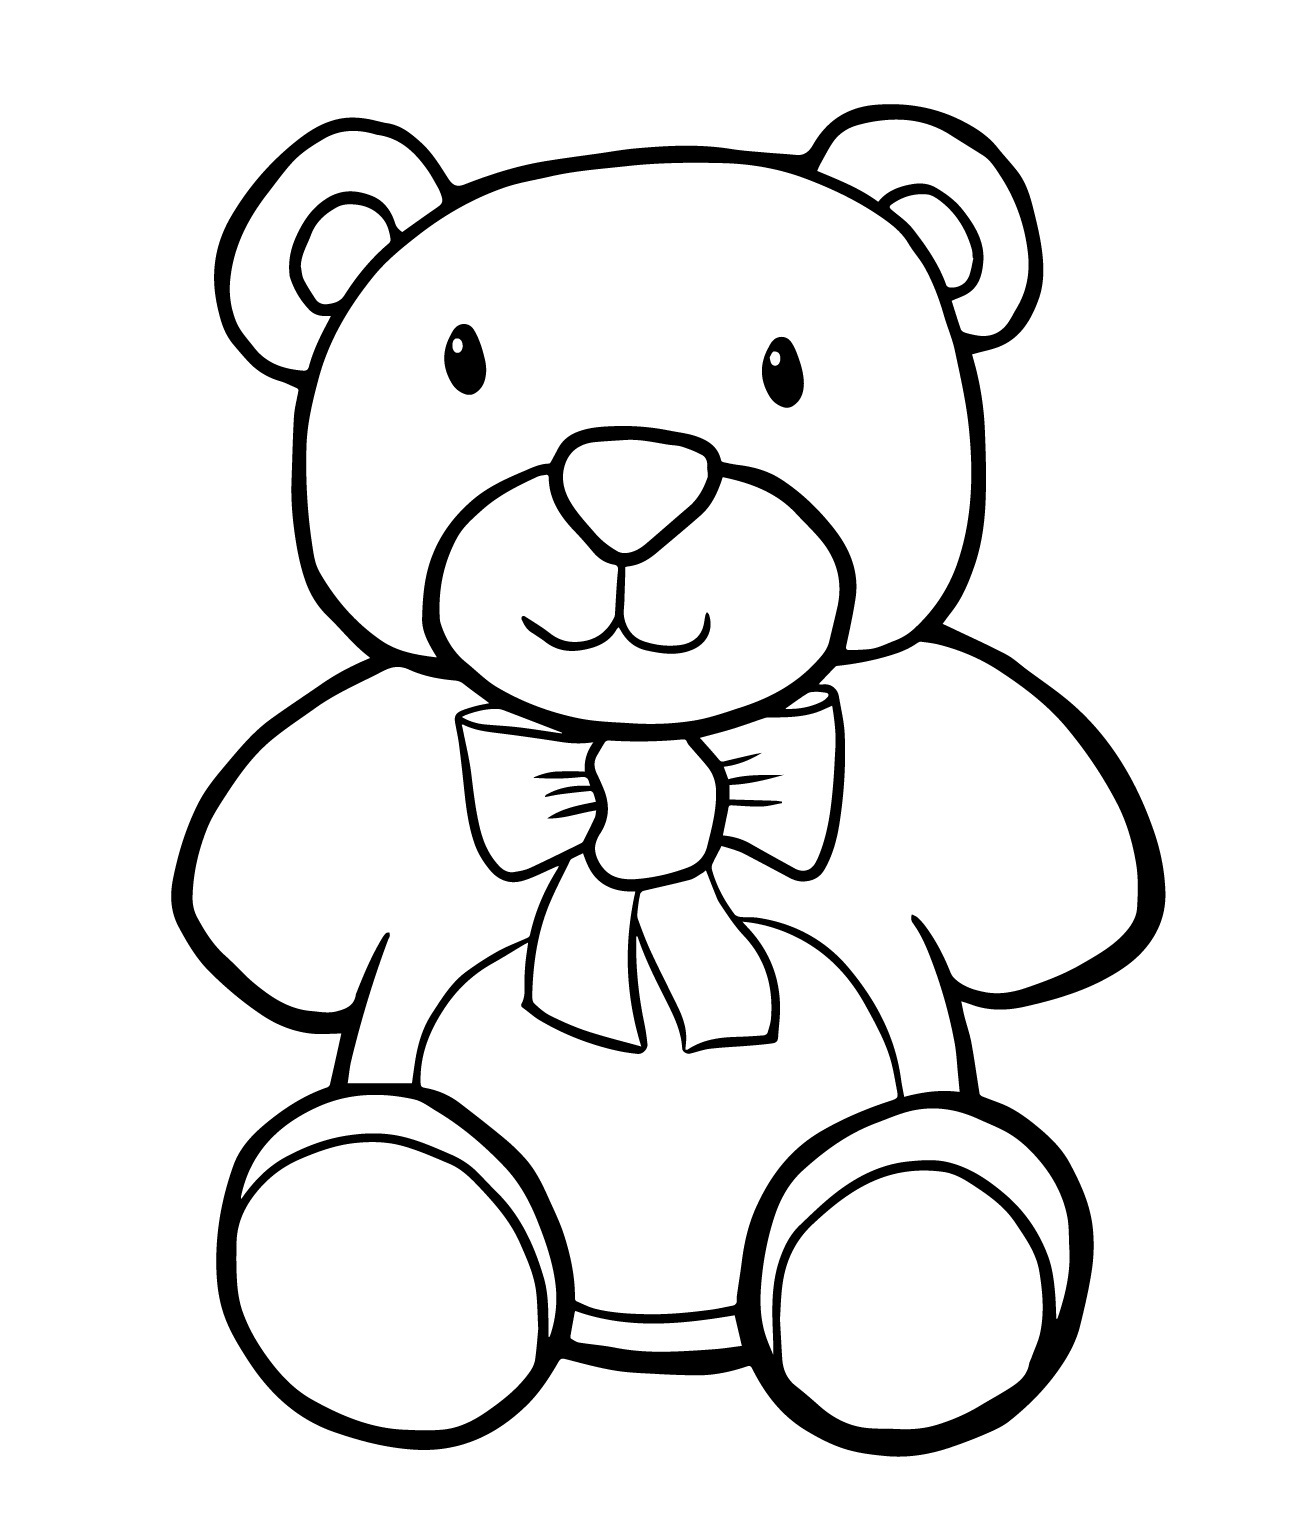 coloring picture bear polar bear coloring pages to download and print for free bear coloring picture